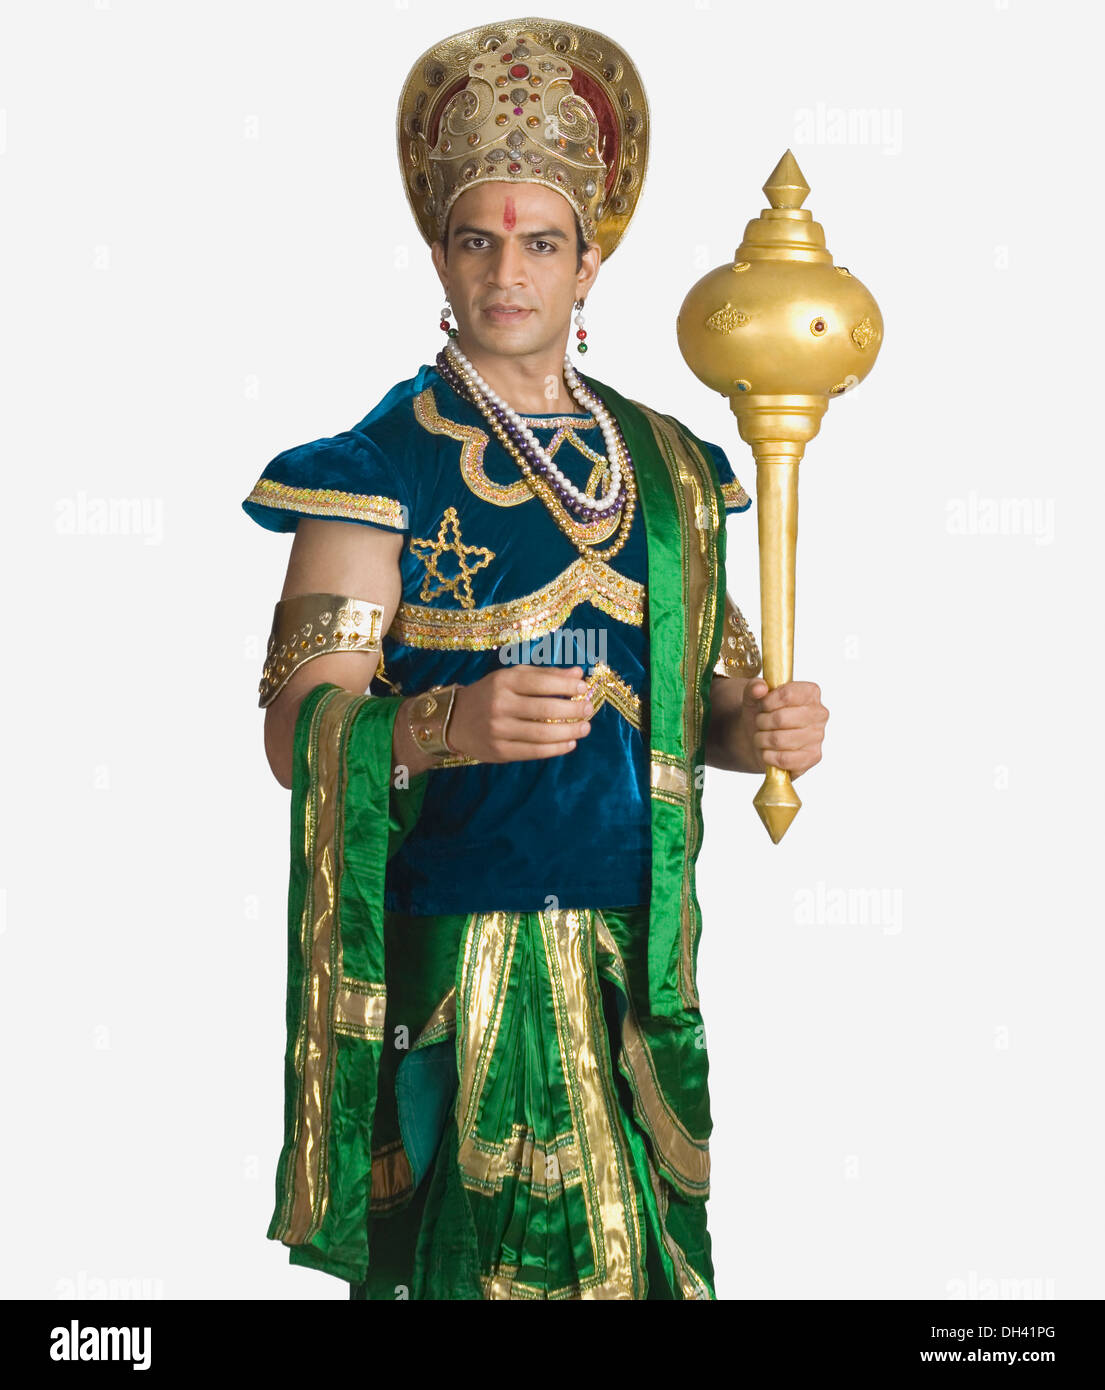 Young man dressed-up as Bhima and holding a mace Stock Photo